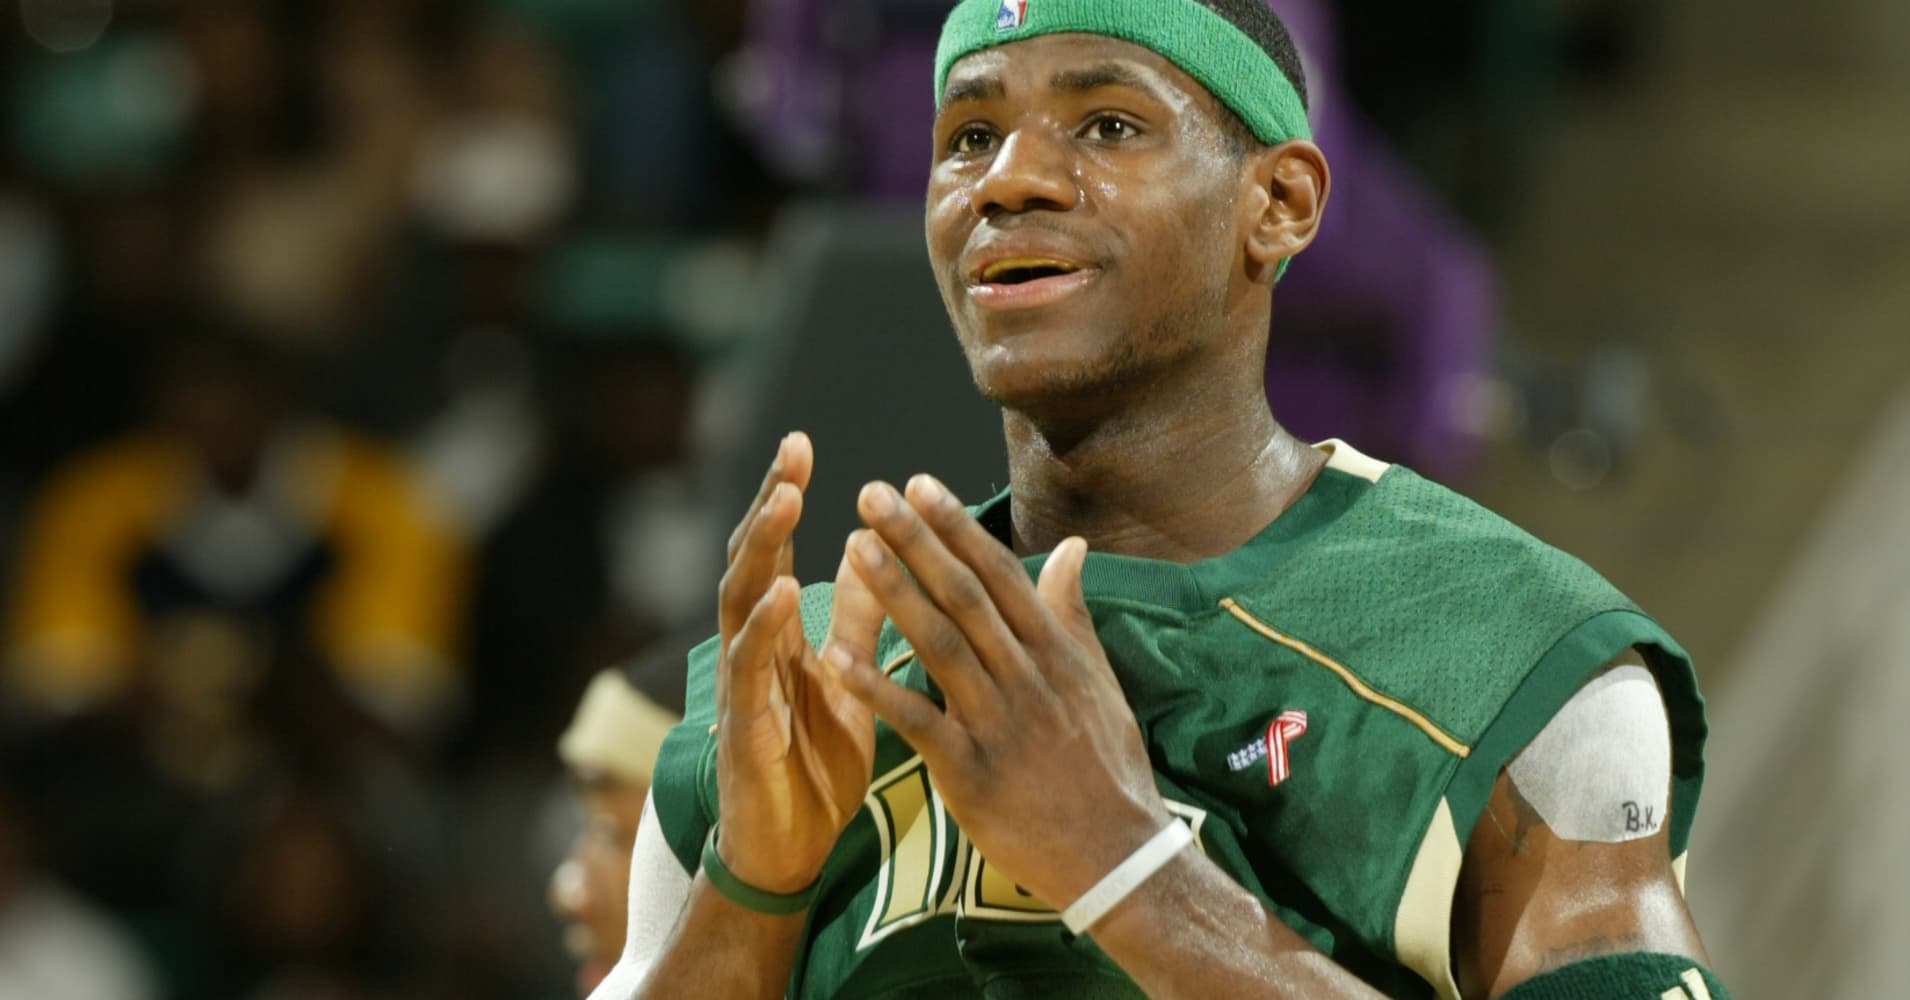 LeBron James played for St. Vincent High School